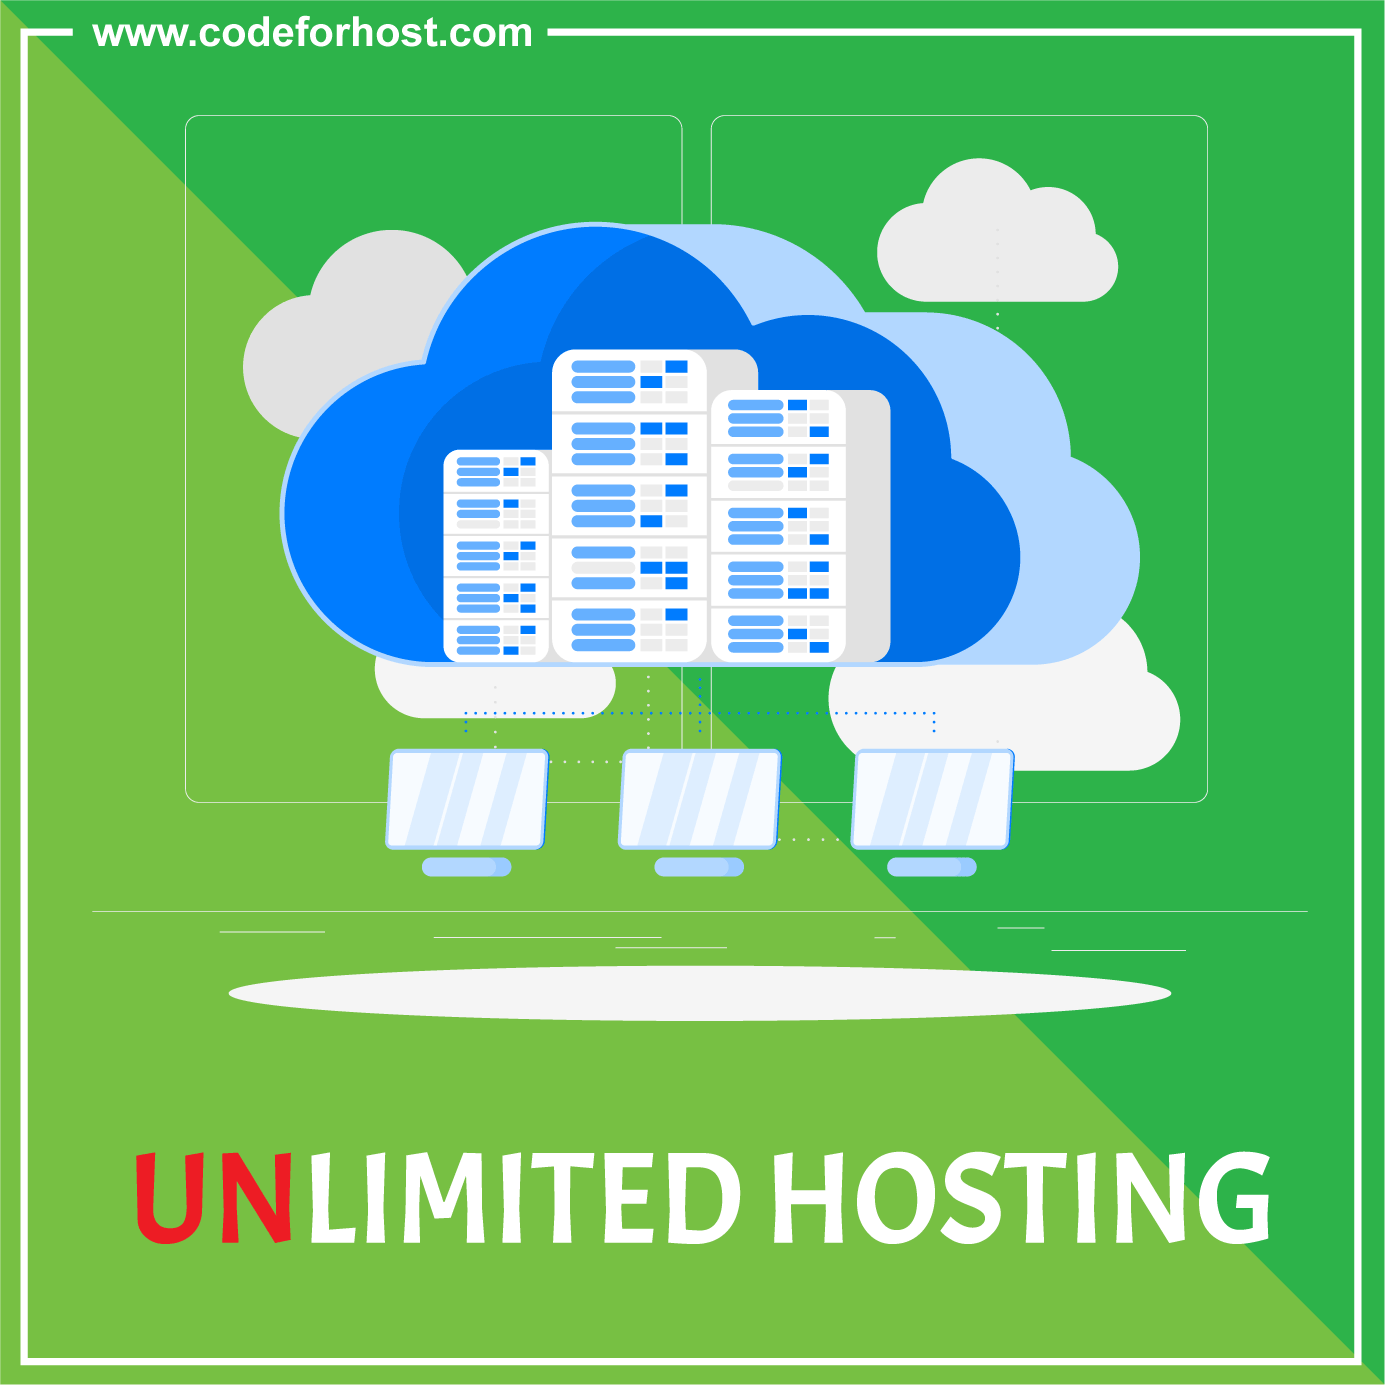 Why Unlimited Hosting is Actually Limited 3 Most Common Reasons